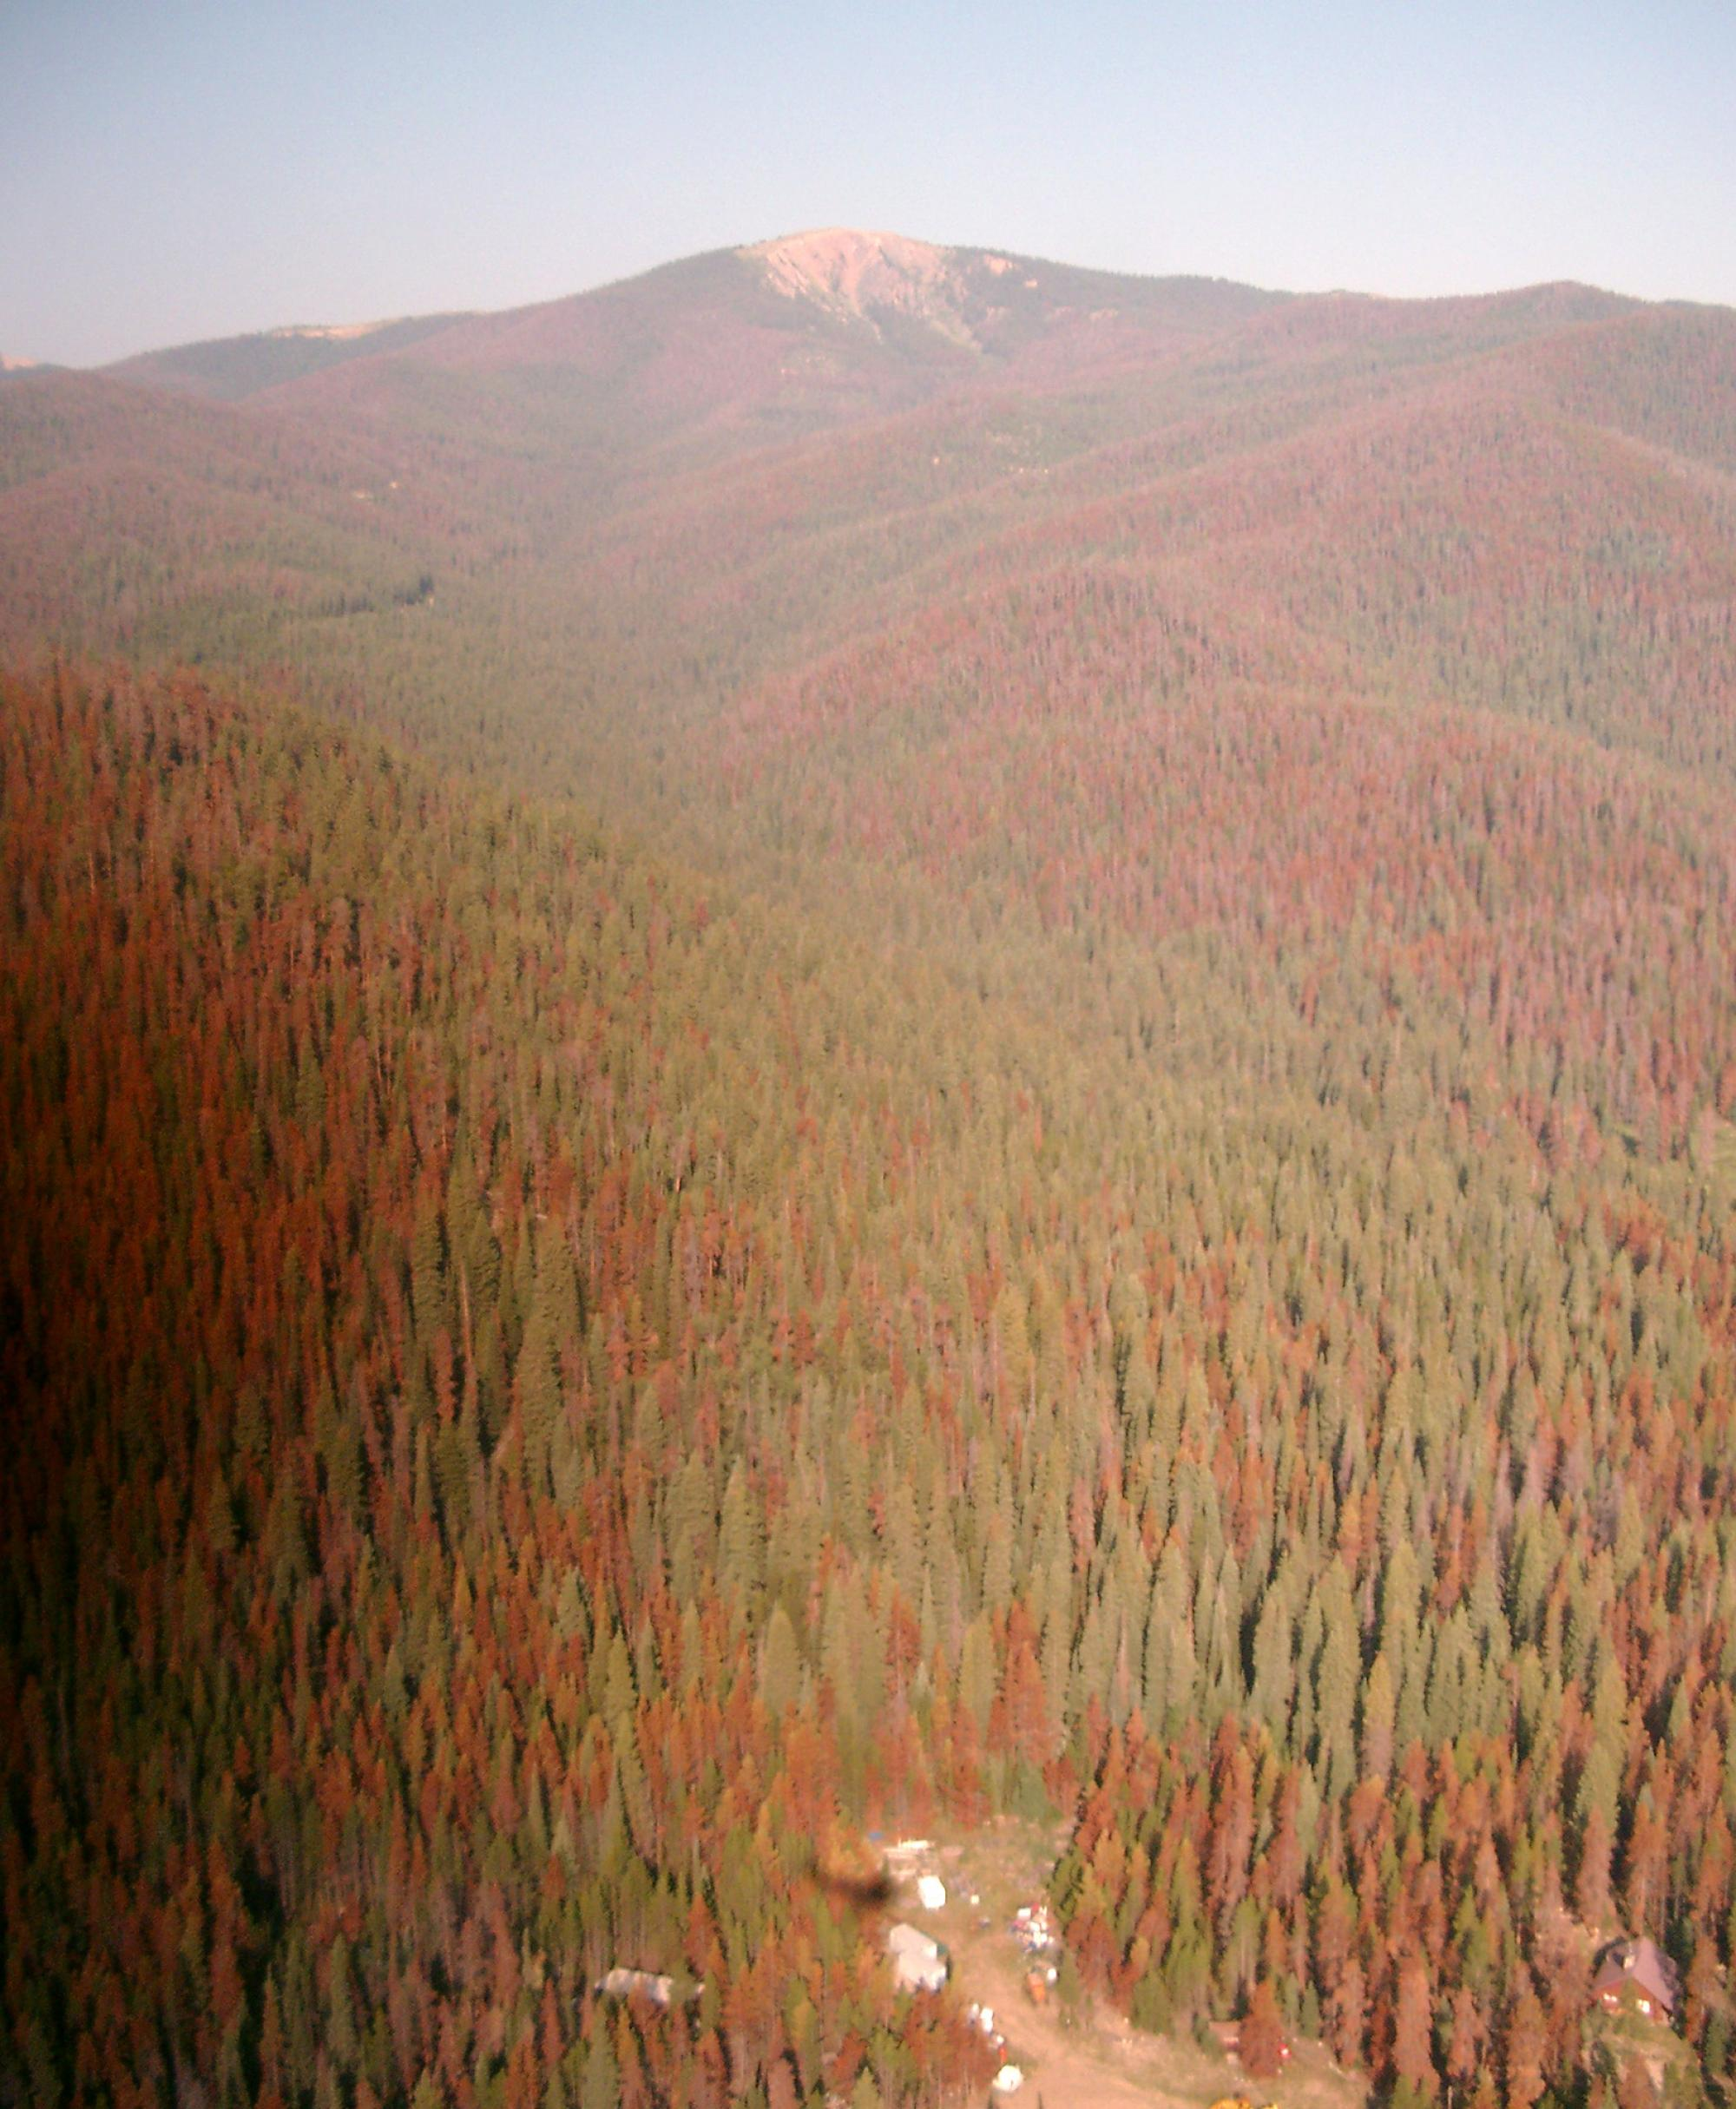 Warmer wintertime temperatures are thought to boost pine beetle populations, while extended dry periods make trees more susceptible to the insects.